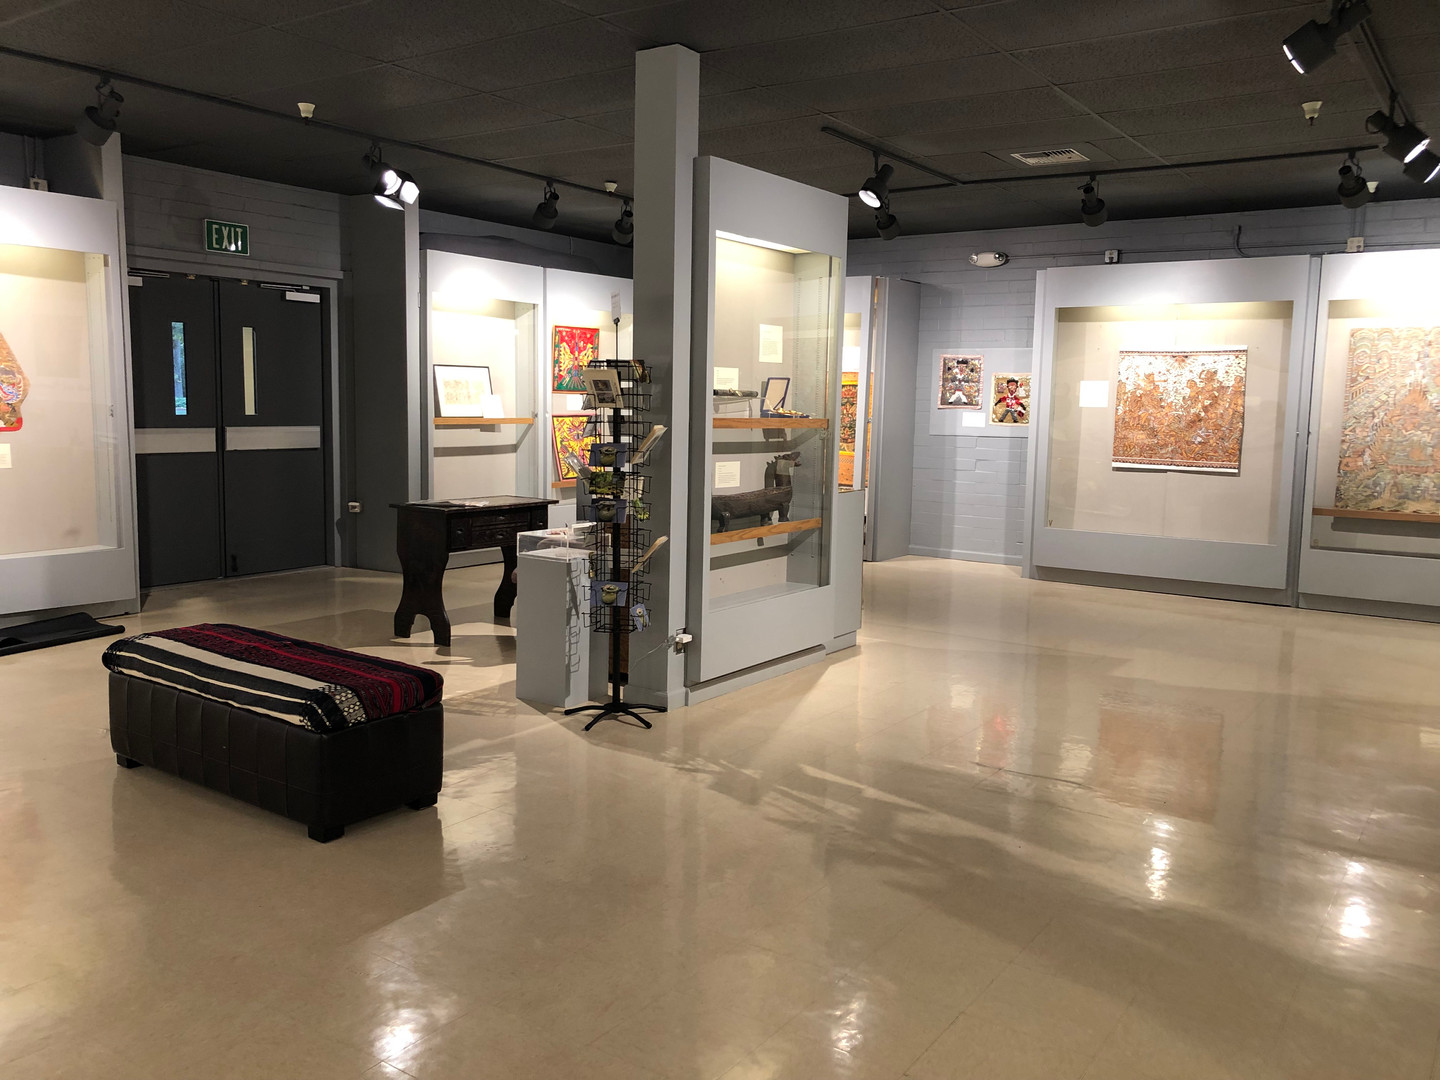 Gallery I renovated